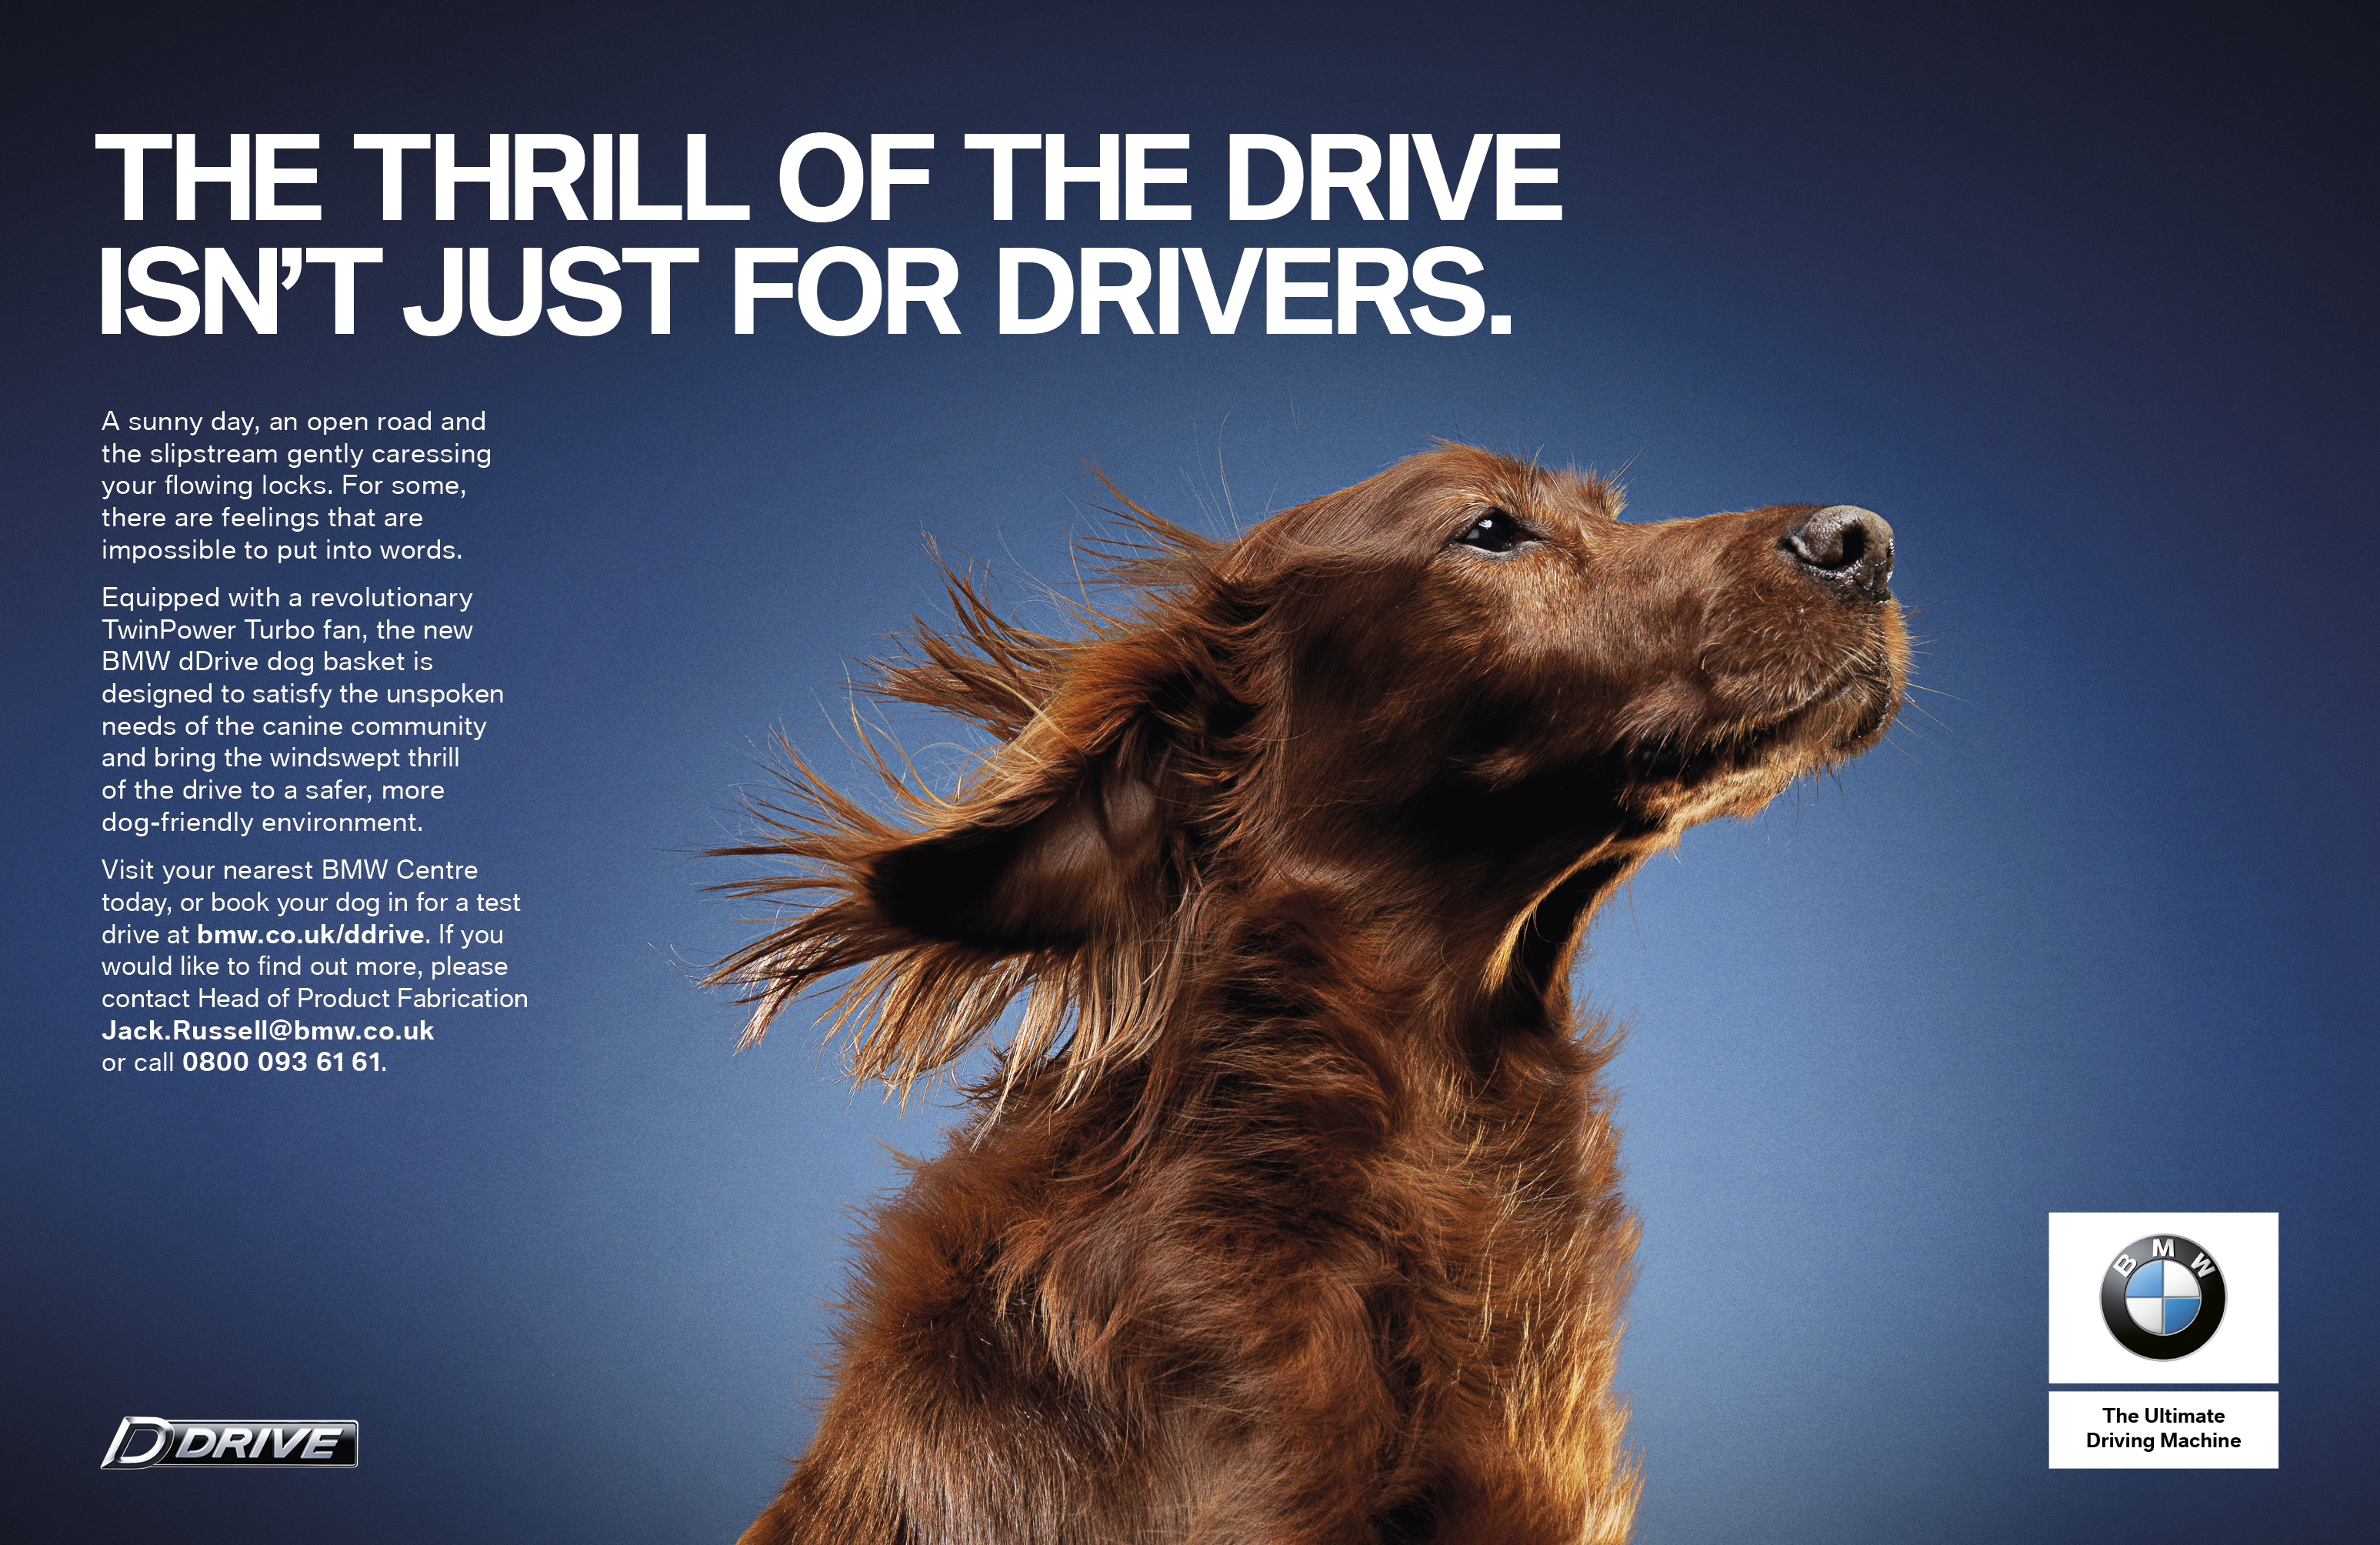 Owners Can Also Feel Safe In The Knowledge That Their Canine Friends Are Enjoying The Thrill Of The Drive In A Bmw Without Any Potential Mishaps Or Damage